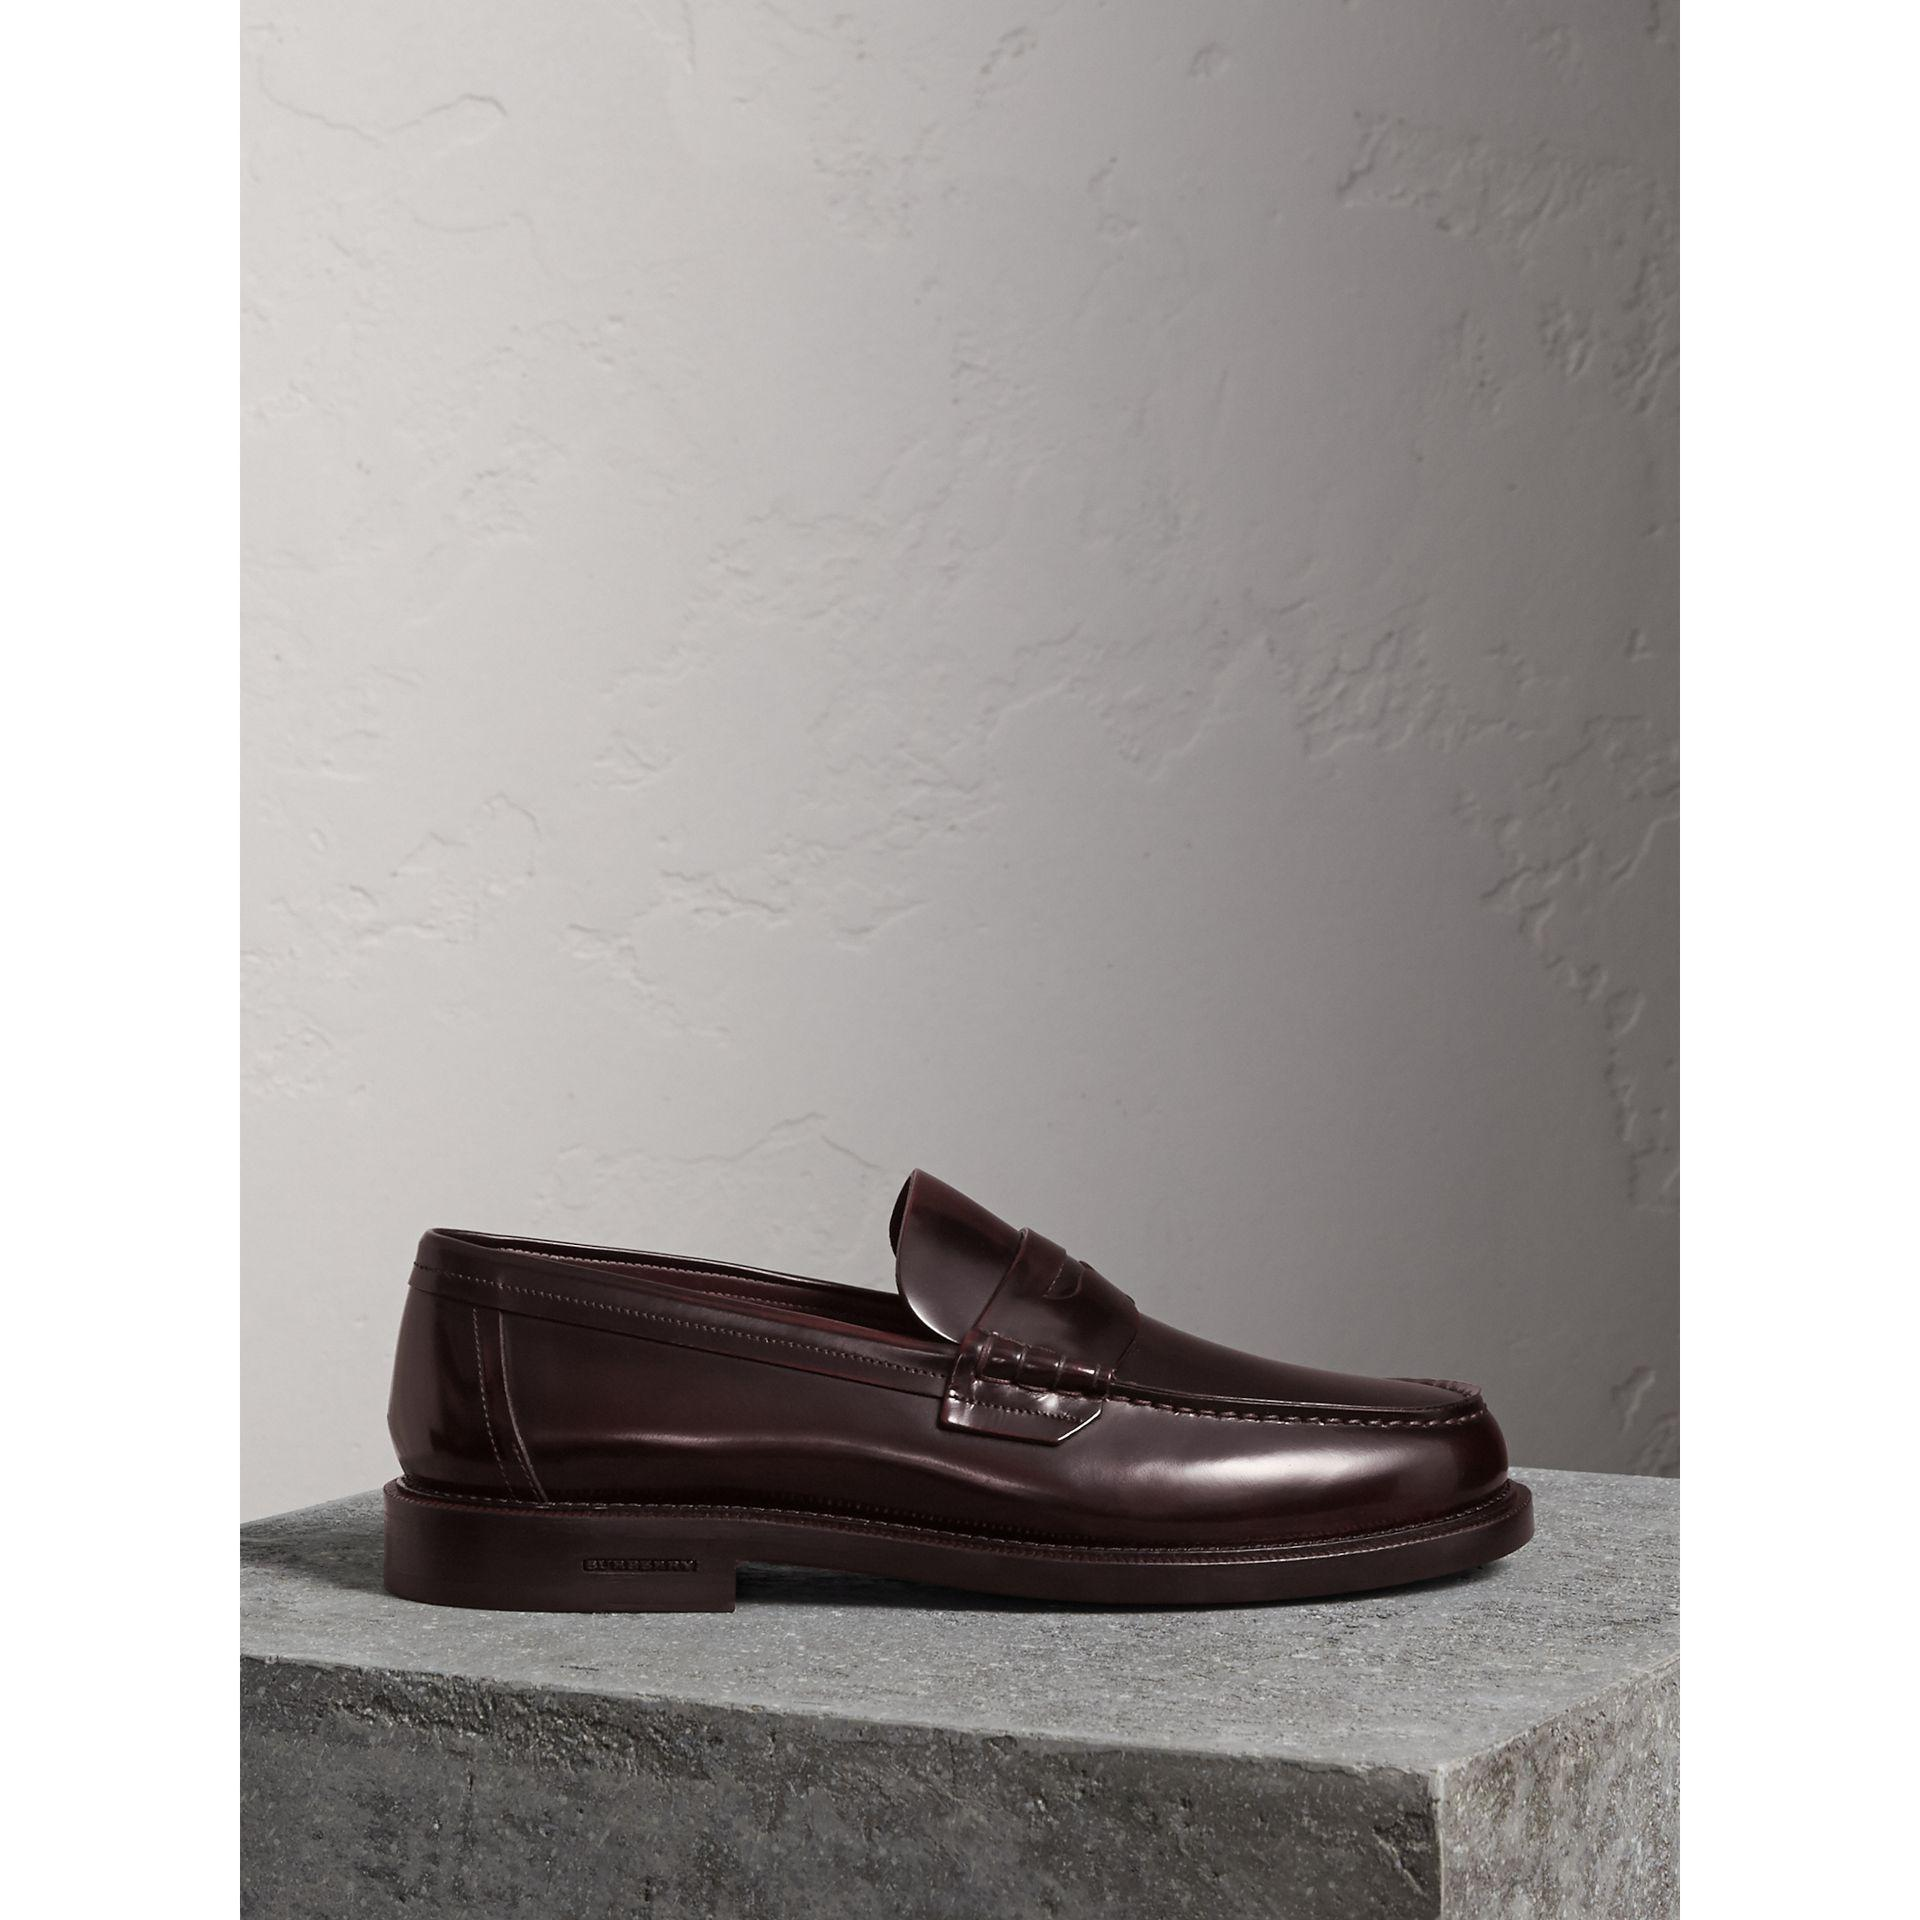 f4e2e0693b6 Lyst - Burberry Leather Penny Loafers for Men